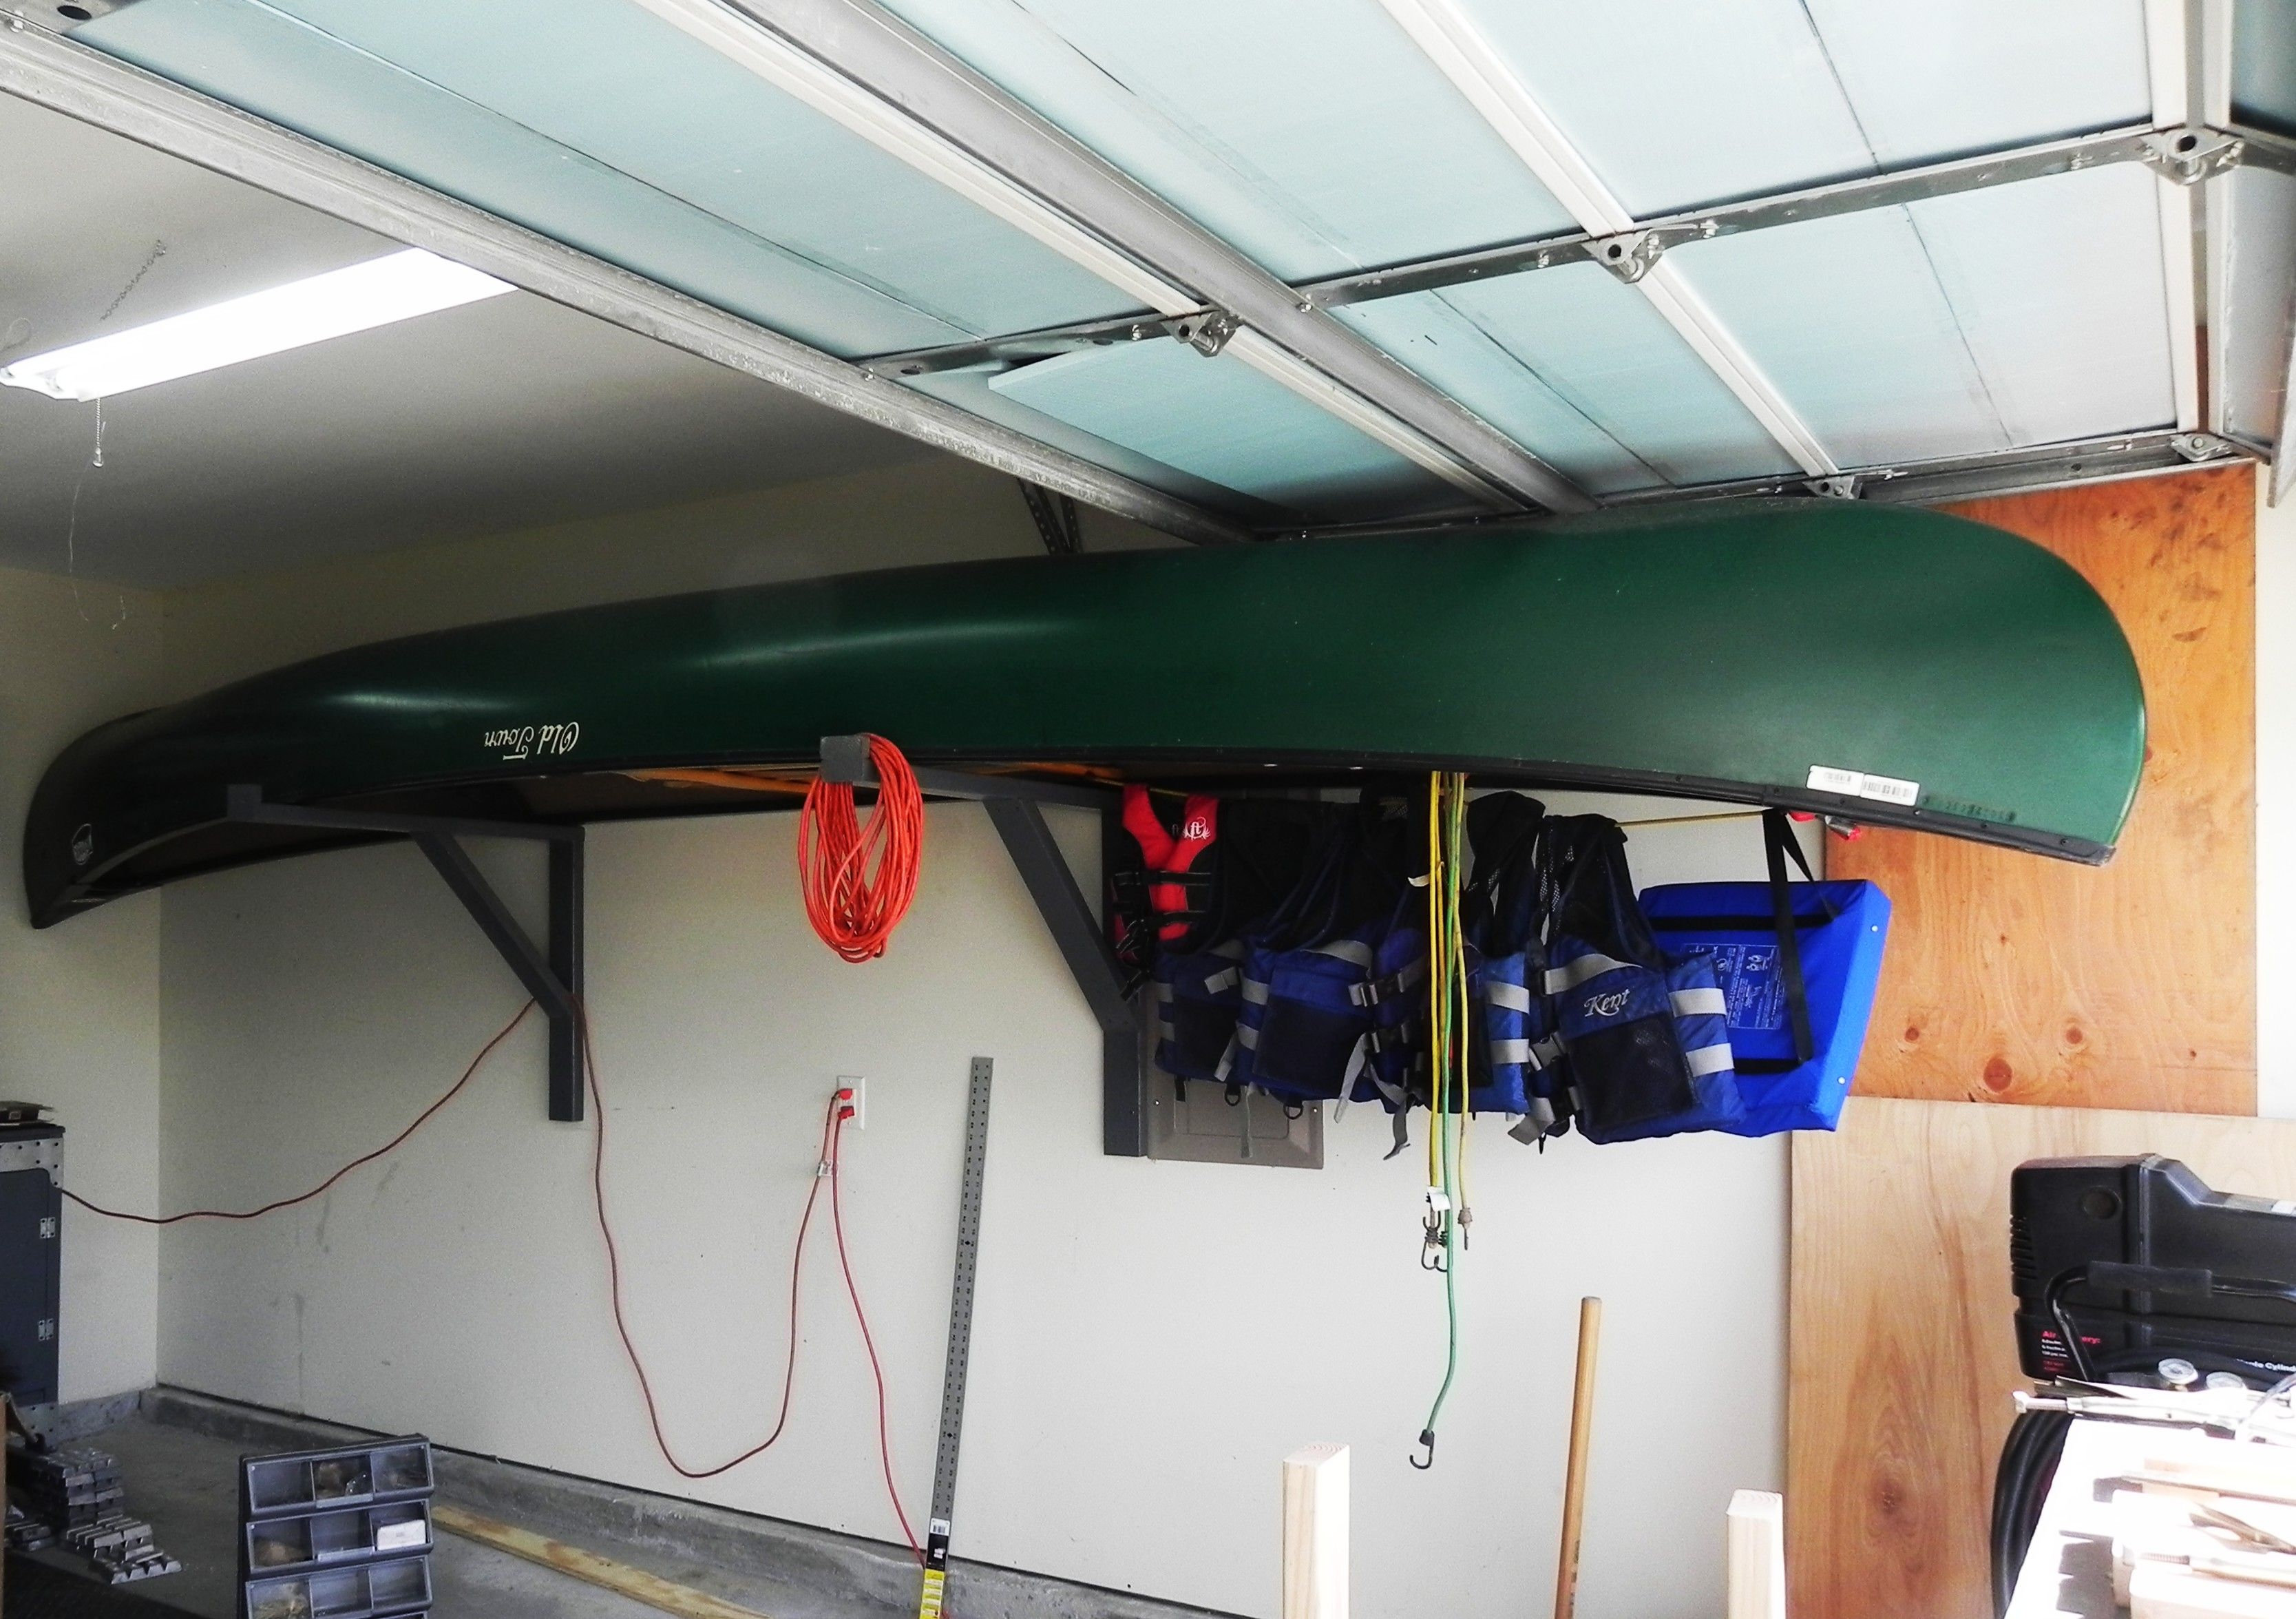 Bon How To Hang A 17 Ft Canoe In A 19 Ft Garage. The Canoe Is Just Low Enough  Where The Garage Door Can Open And Close With Out Hitting It.